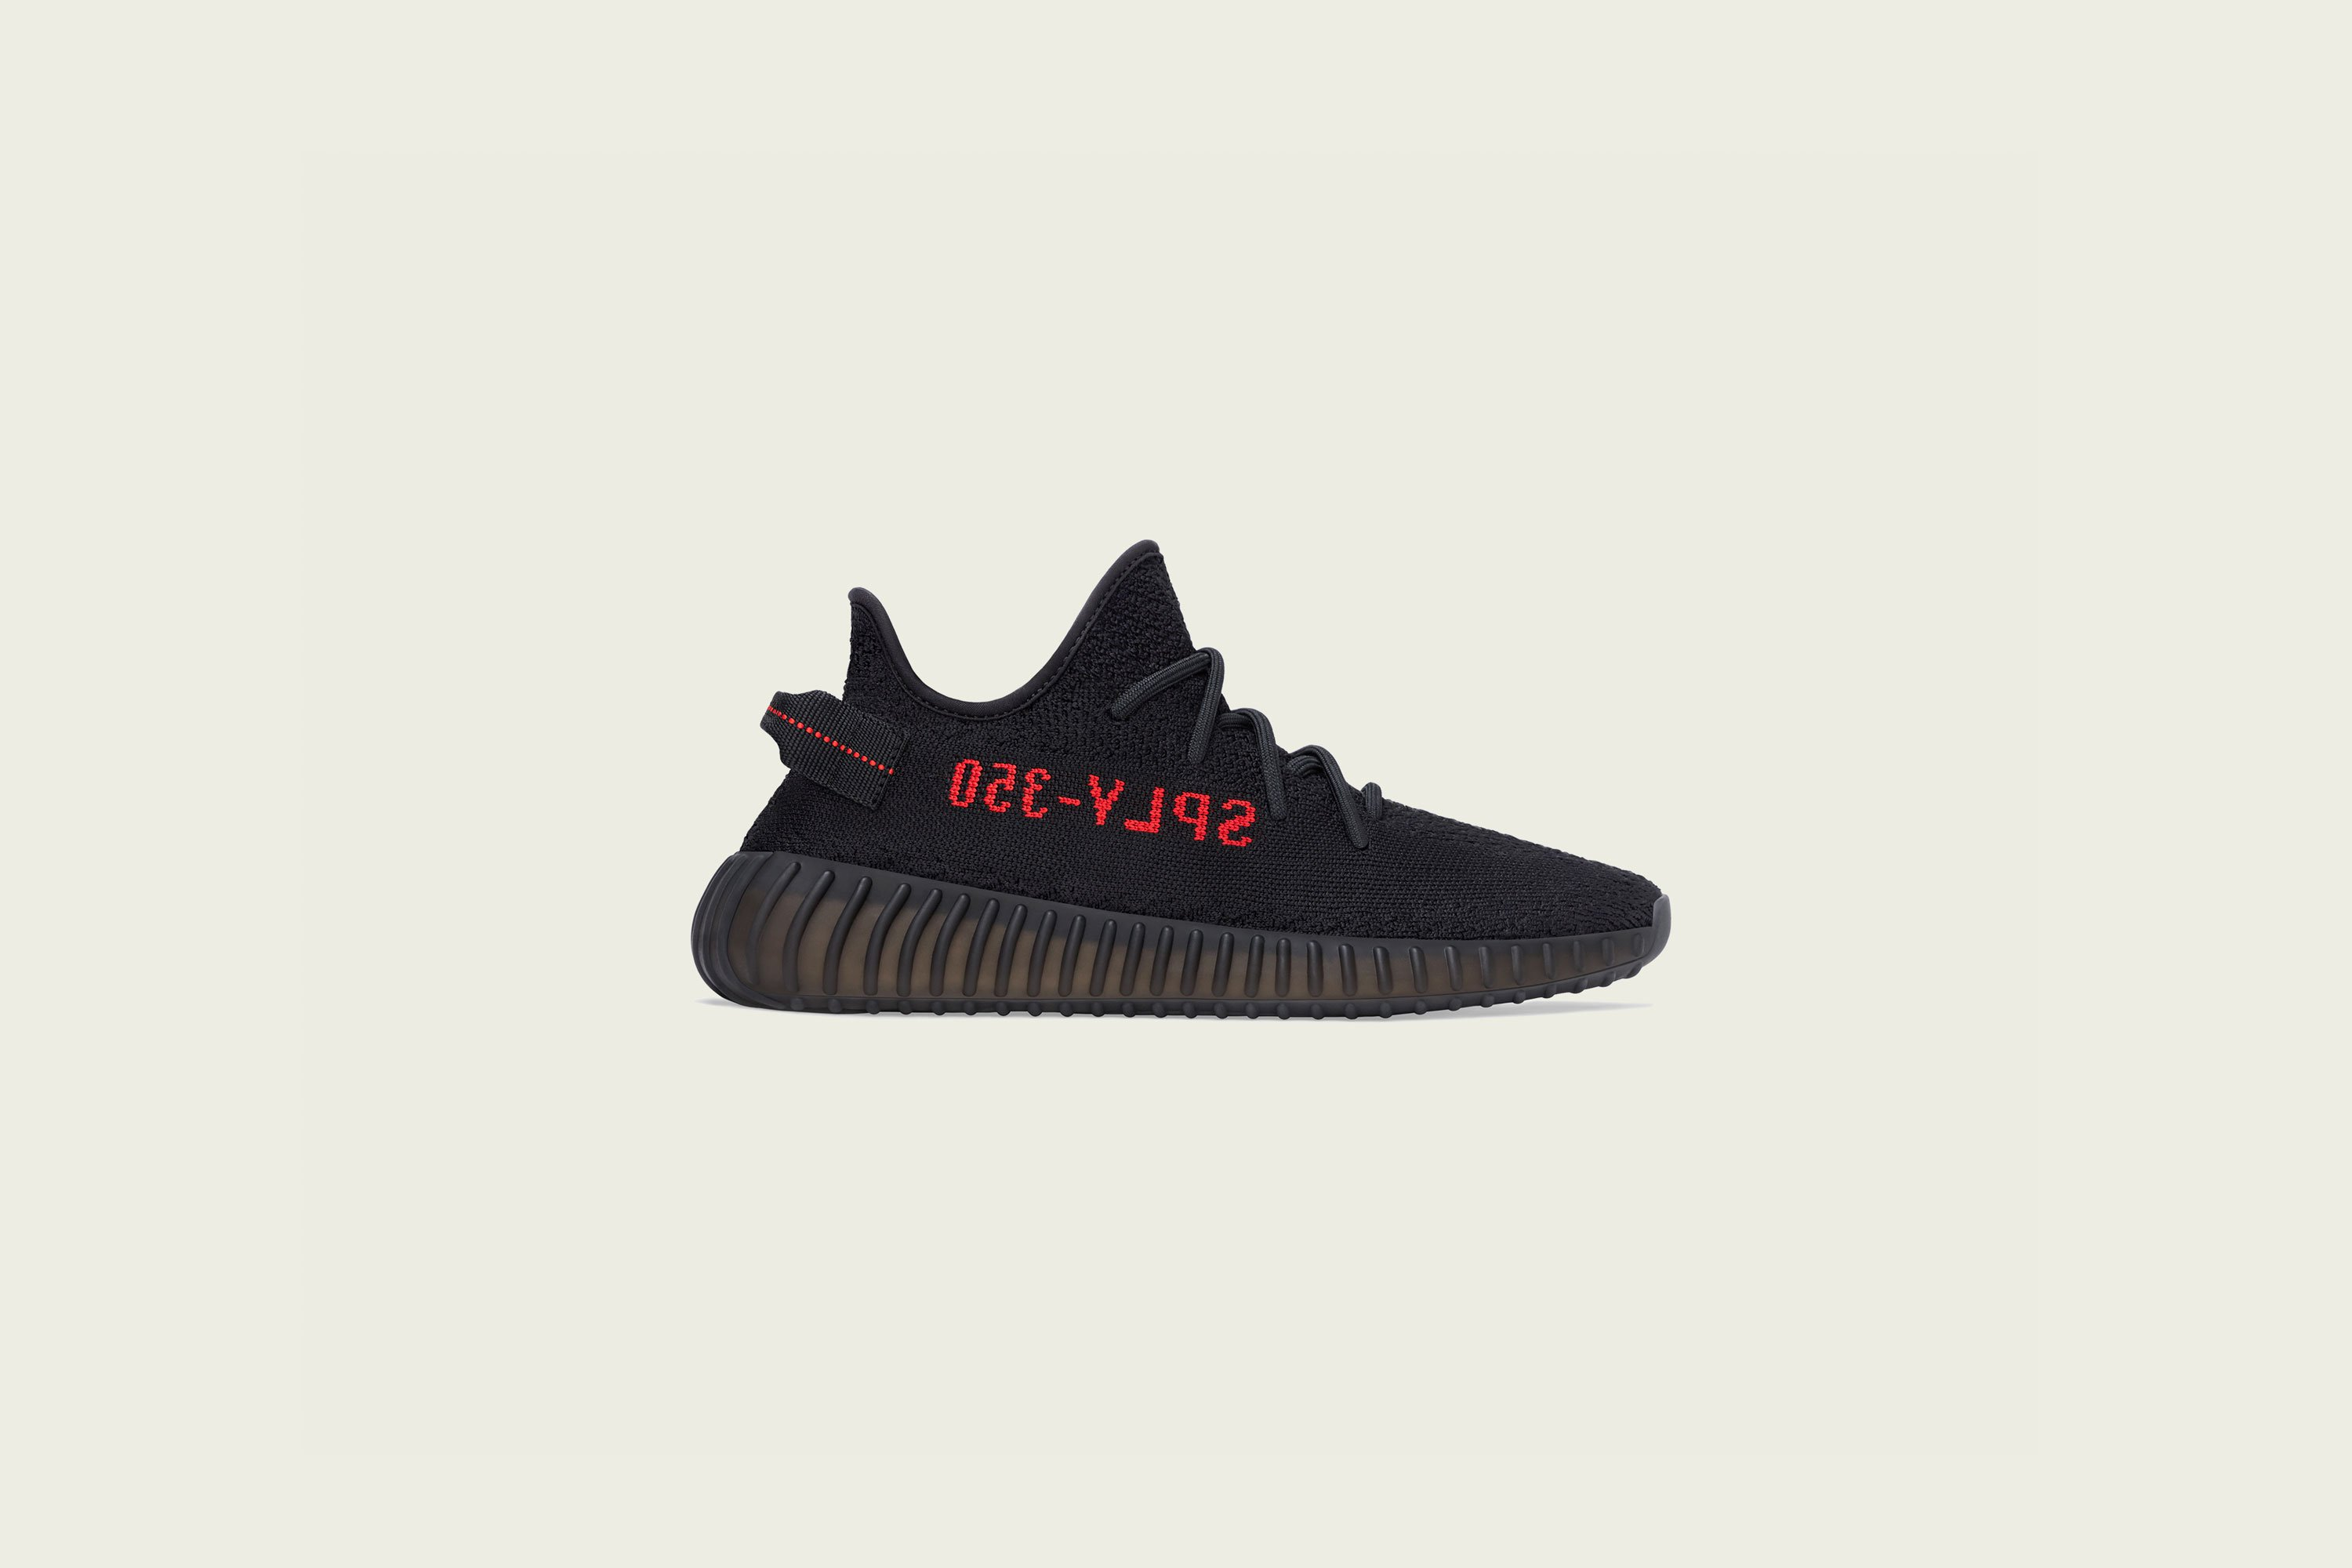 adidas - Yeezy Boost 350v2 - Core Black/Red - Up There